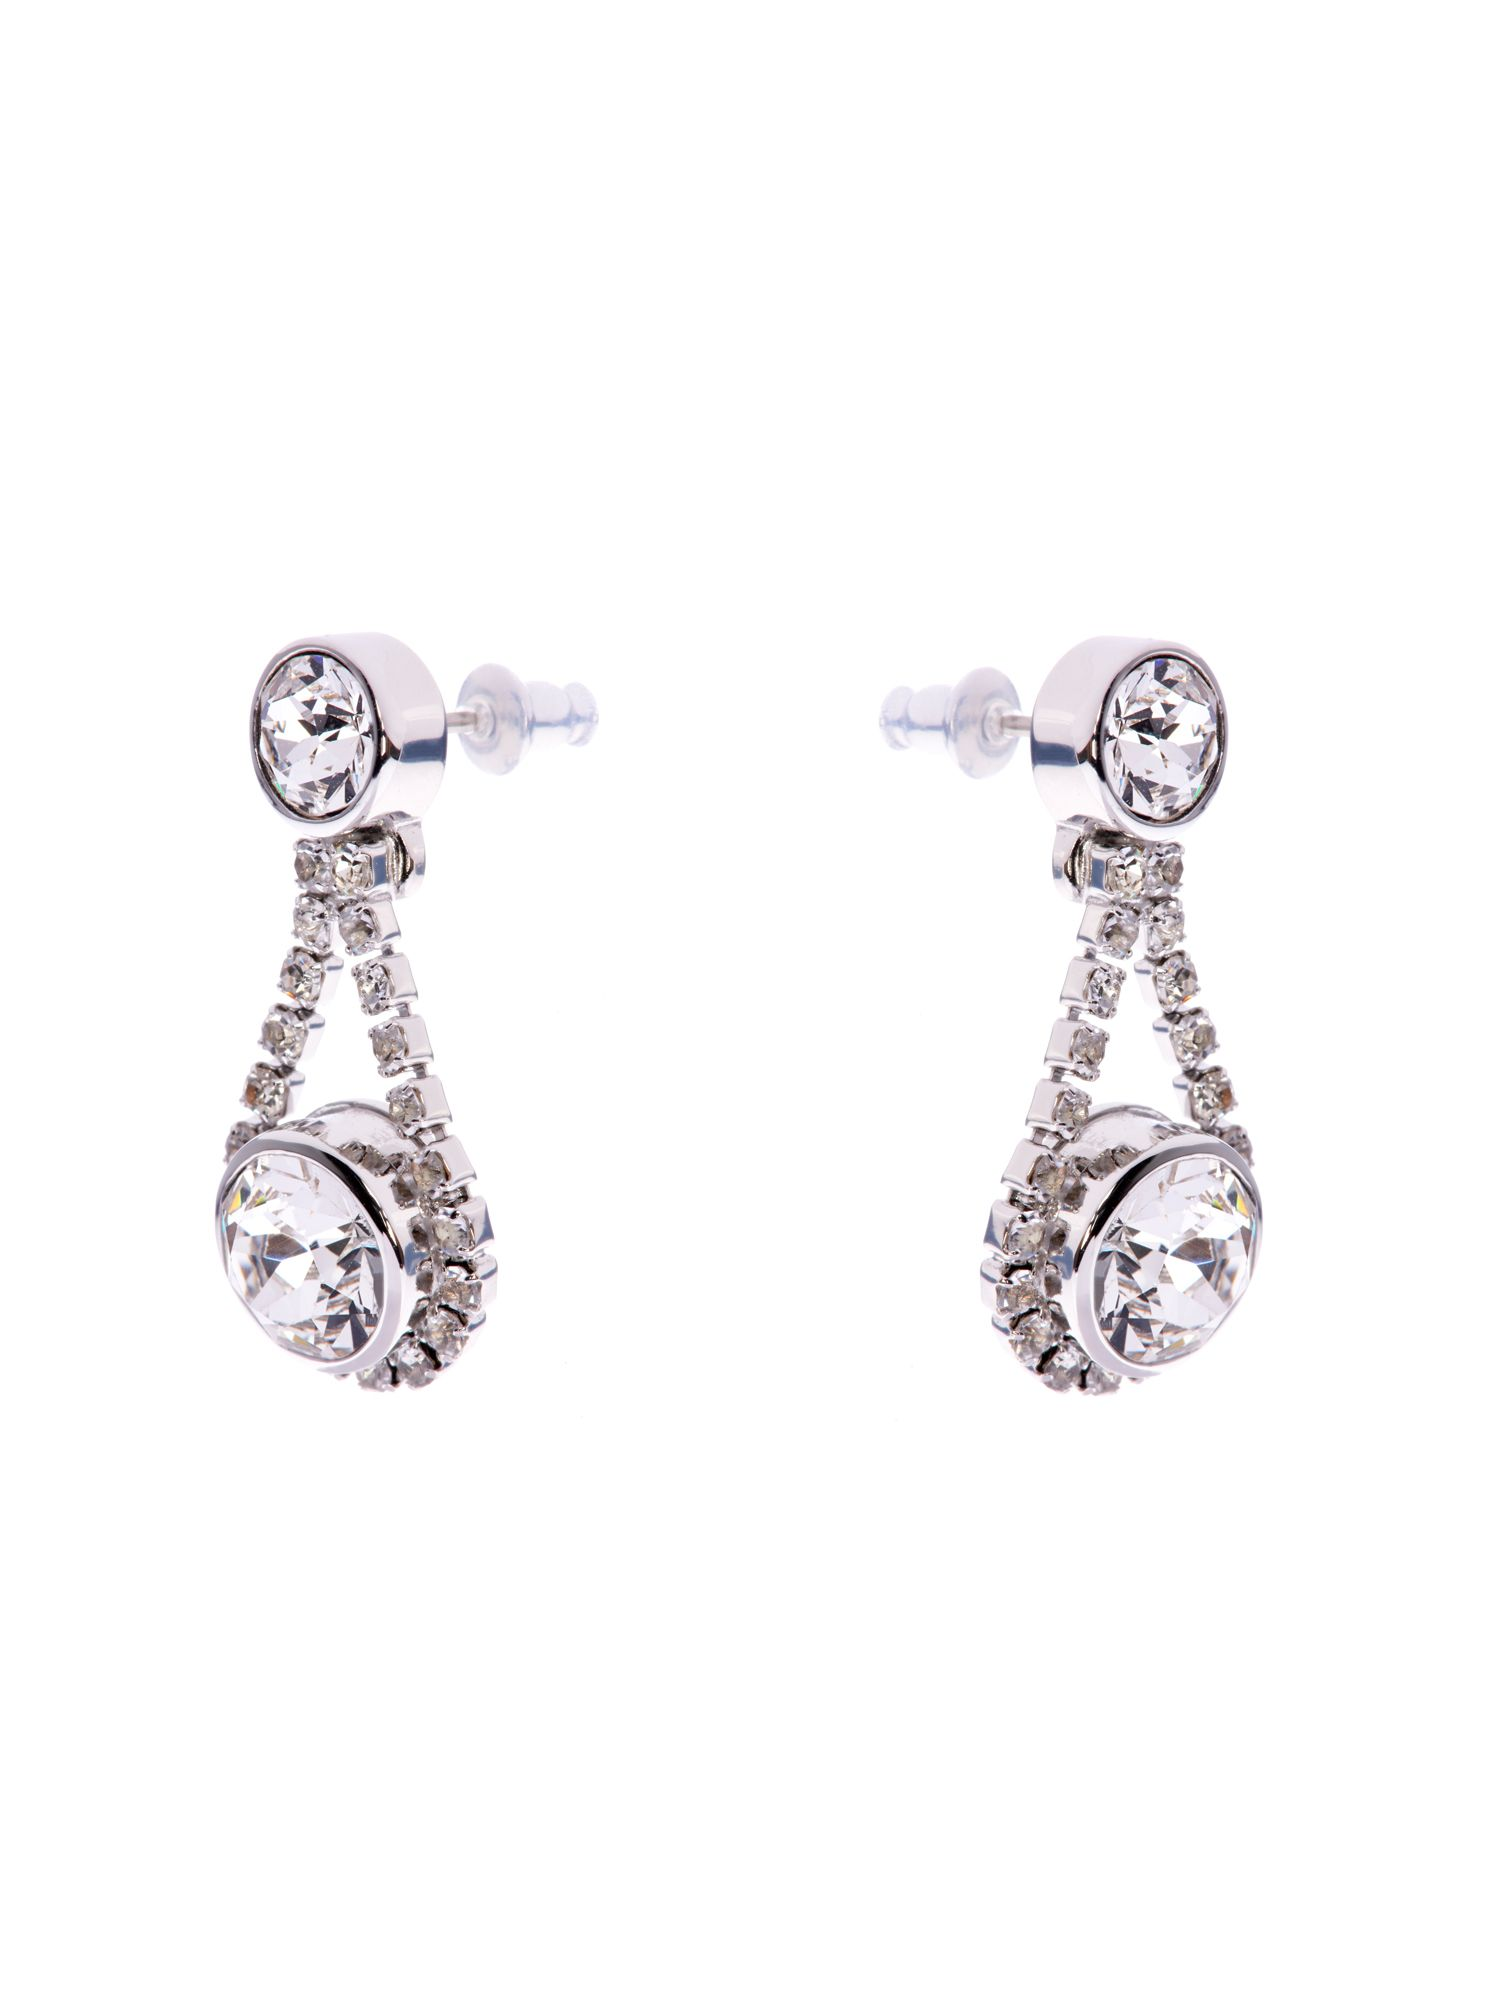 Stormm crystal chain drop earring